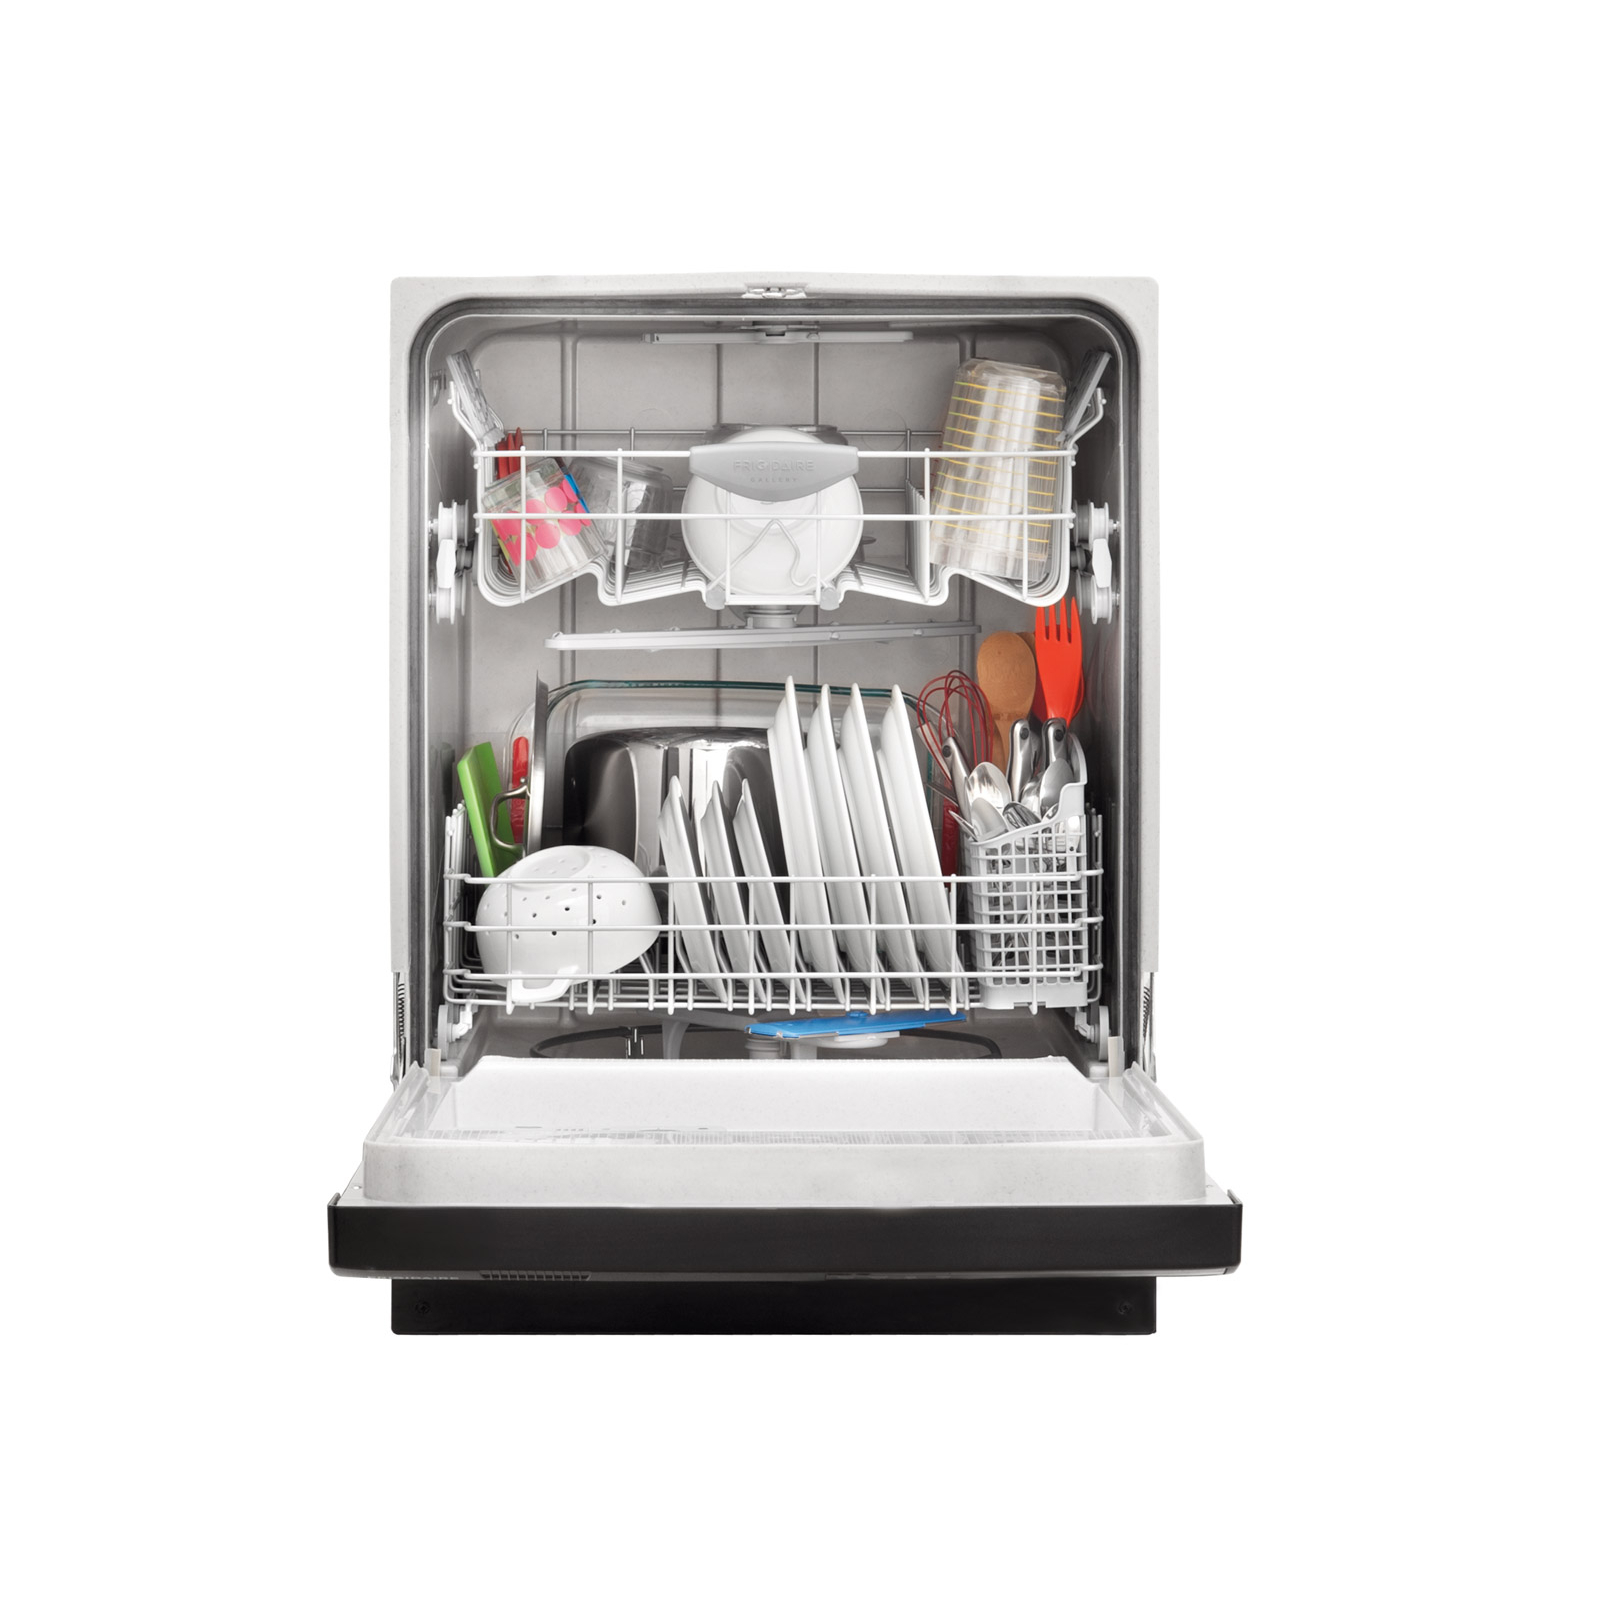 "Frigidaire Gallery FGBD2438PF Gallery 24"" Built-In Dishwasher w/ BladeSpray™ Wash System - Stainless Steel"